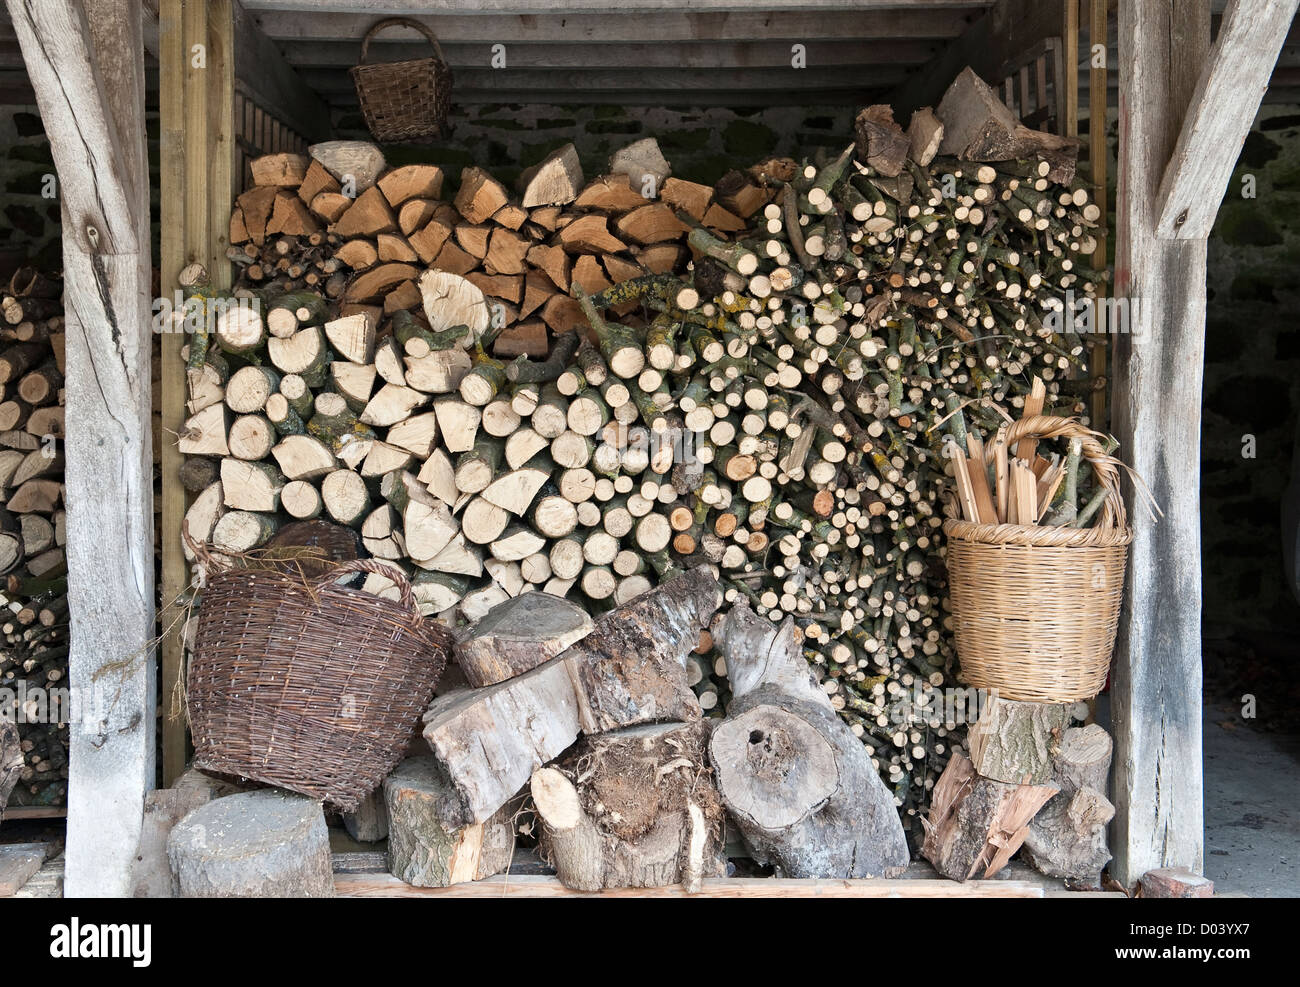 Firewood stacked and ready for the winter, Wales, UK. - Stock Image